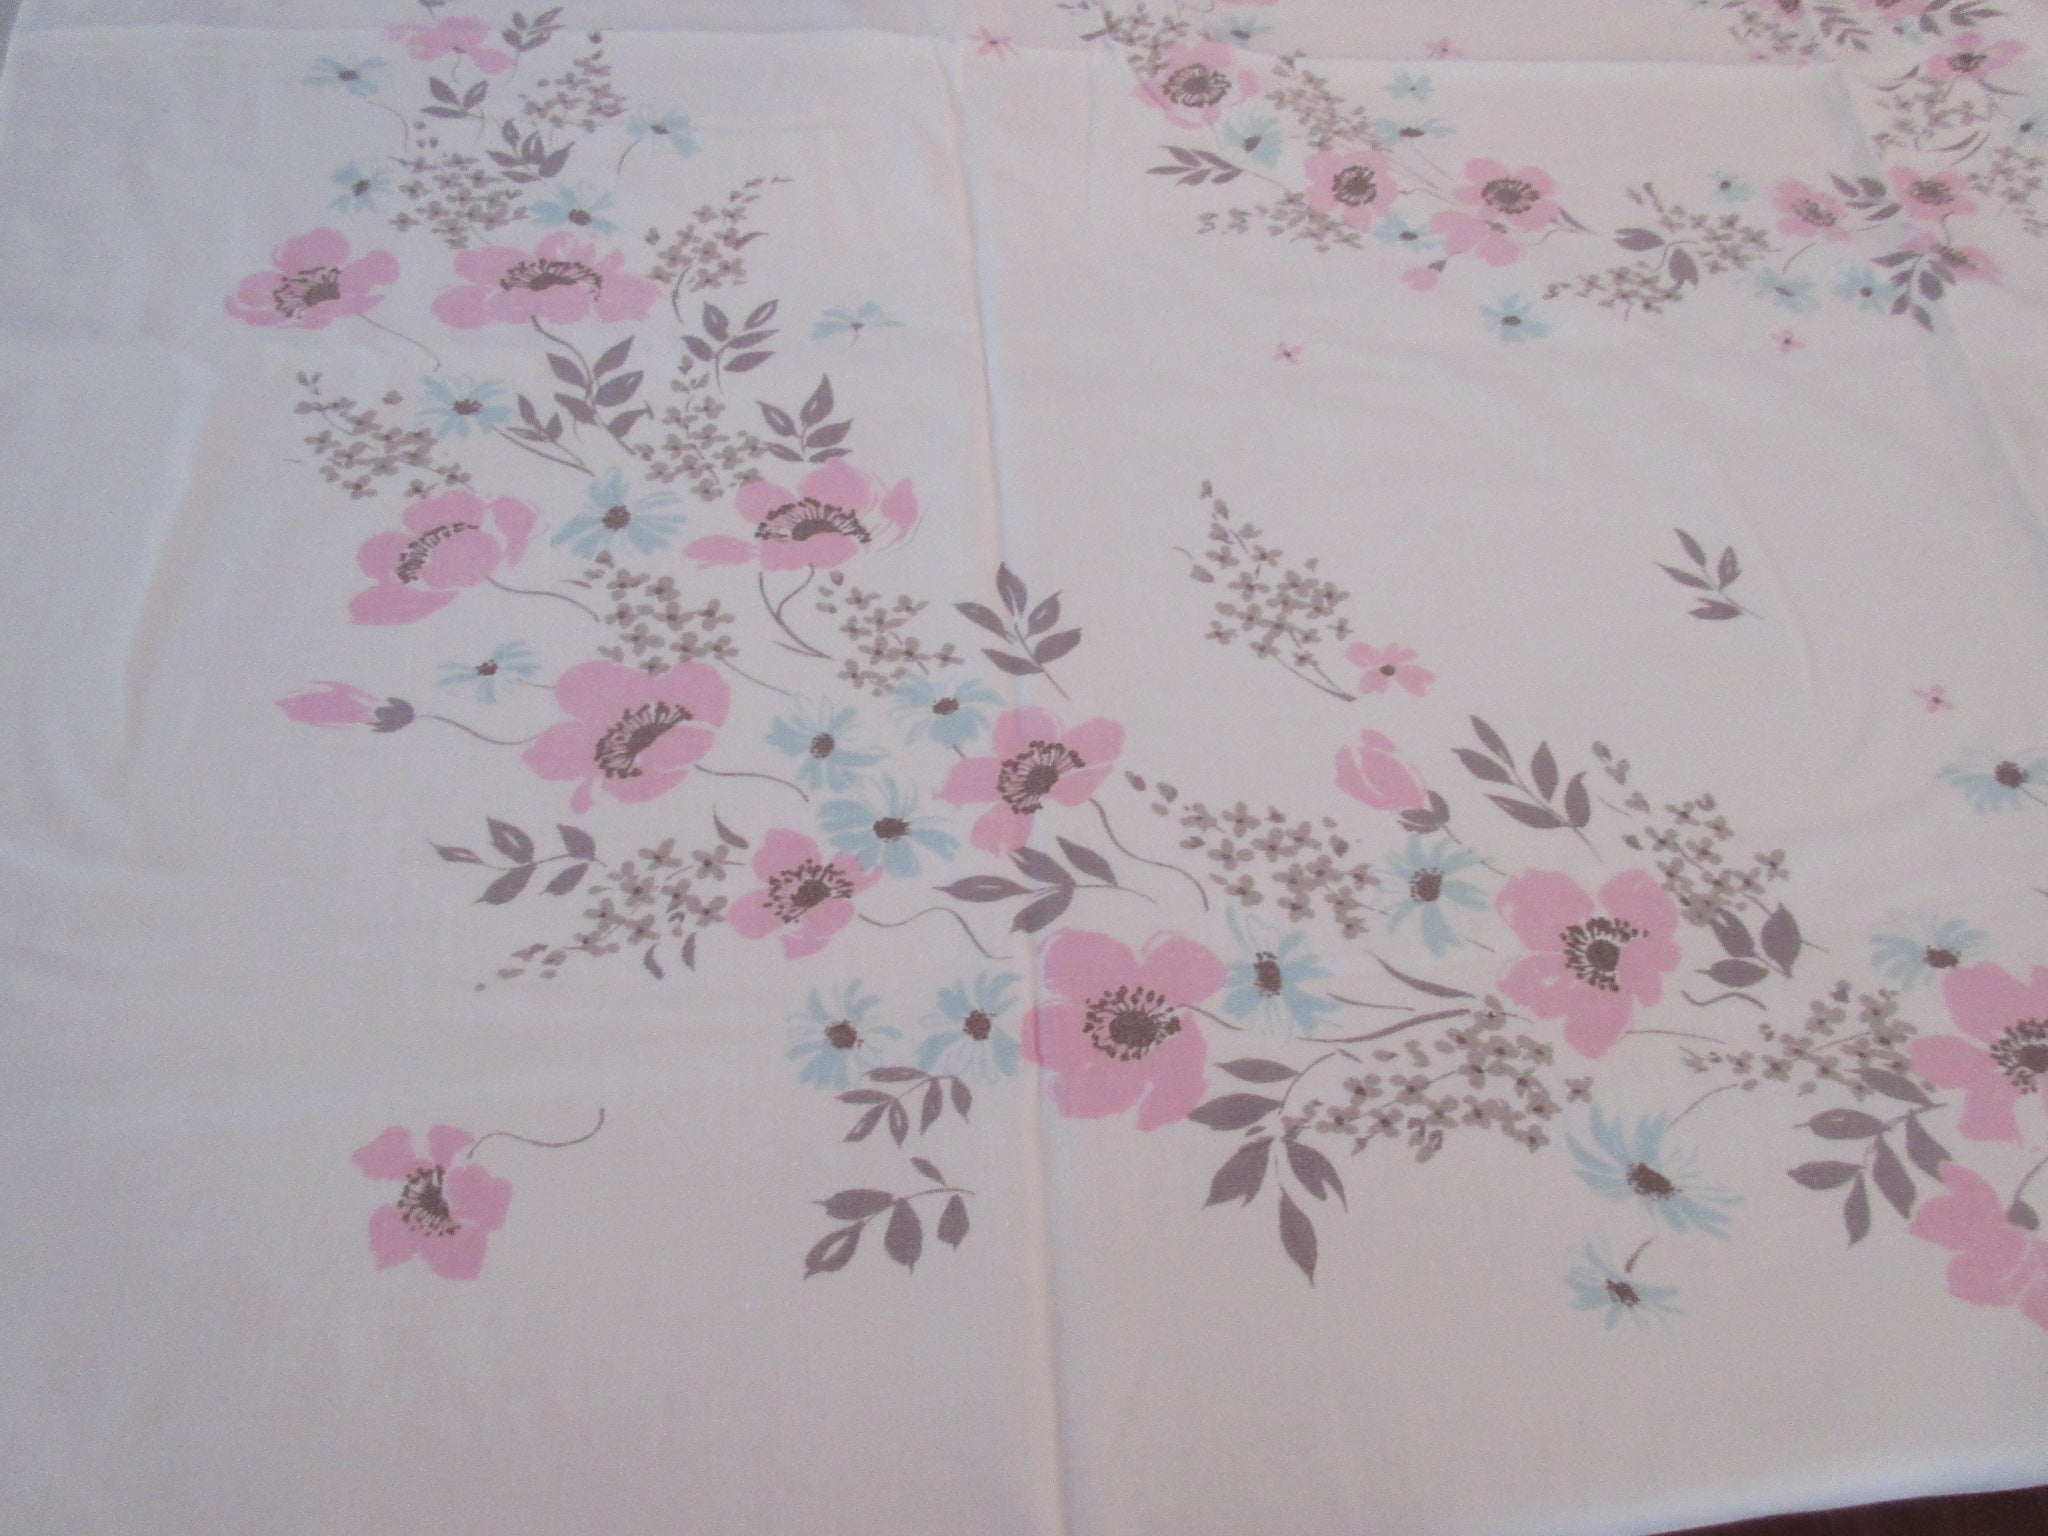 Faded Pink Tan Poppies Blue Daisies Floral Vintage Printed Tablecloth (51 X 42)